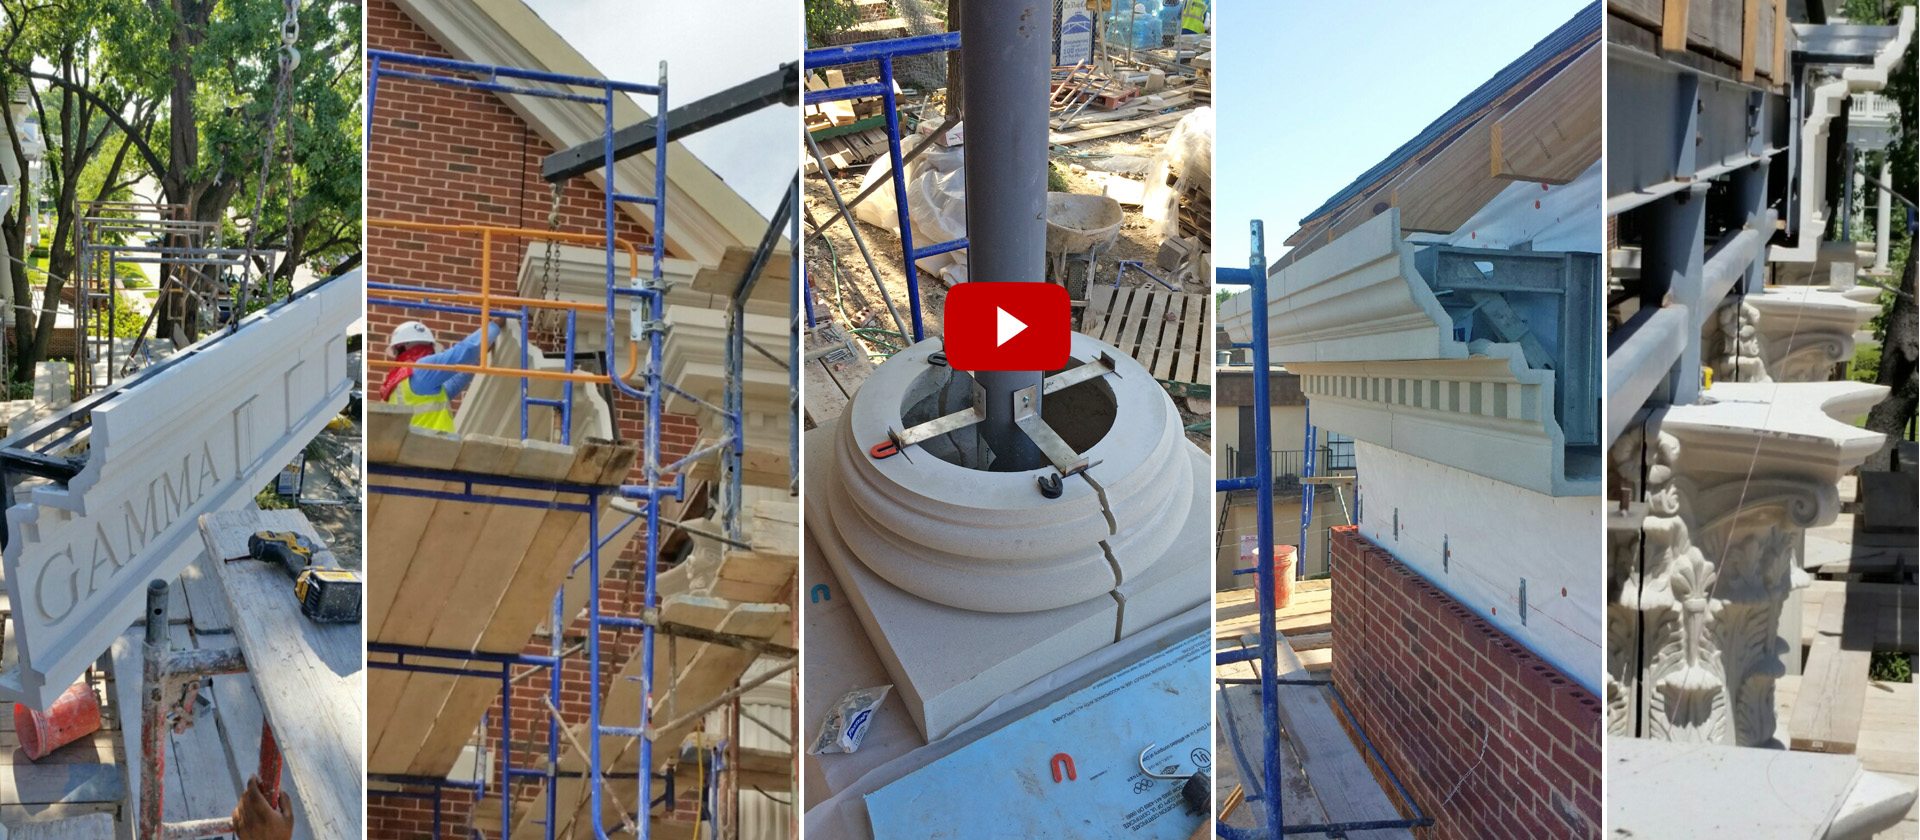 Architectural GFRC | Pre-engineered, Built-in Connections | Installation Support | Installation of GFRC Products at SMU Delta Gamma Sorority House